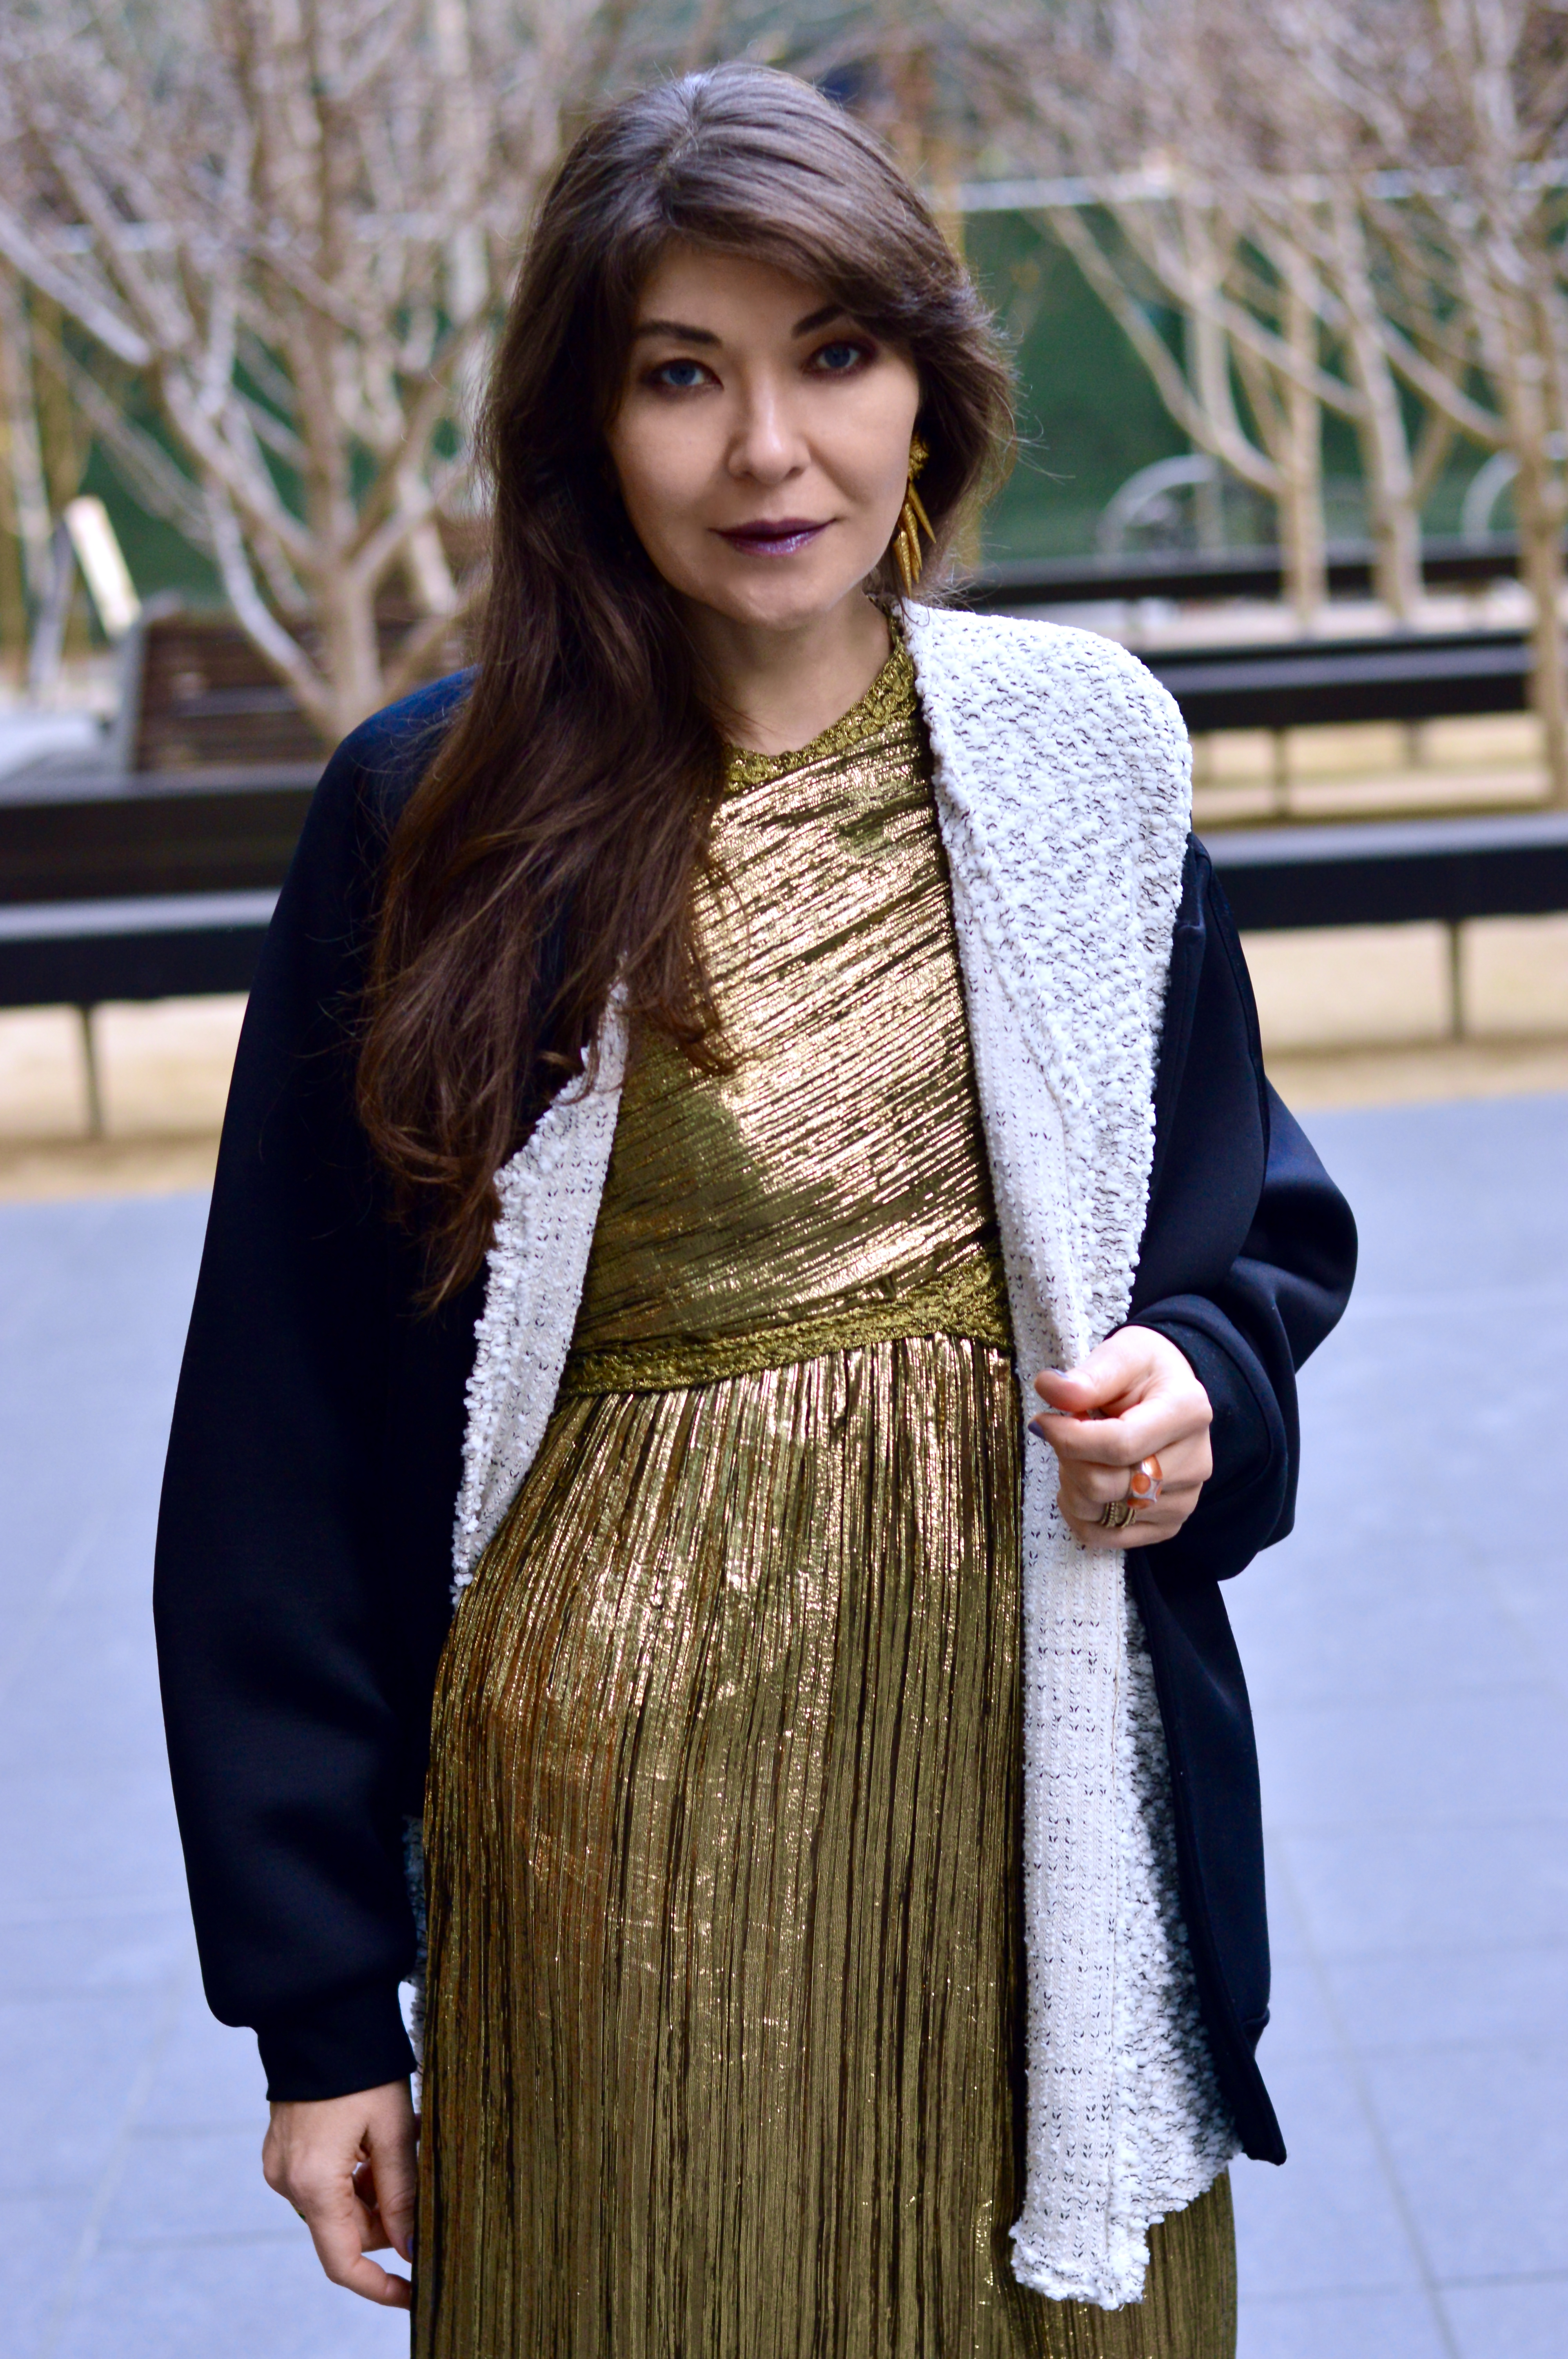 Gold lamé dress and cardigan.